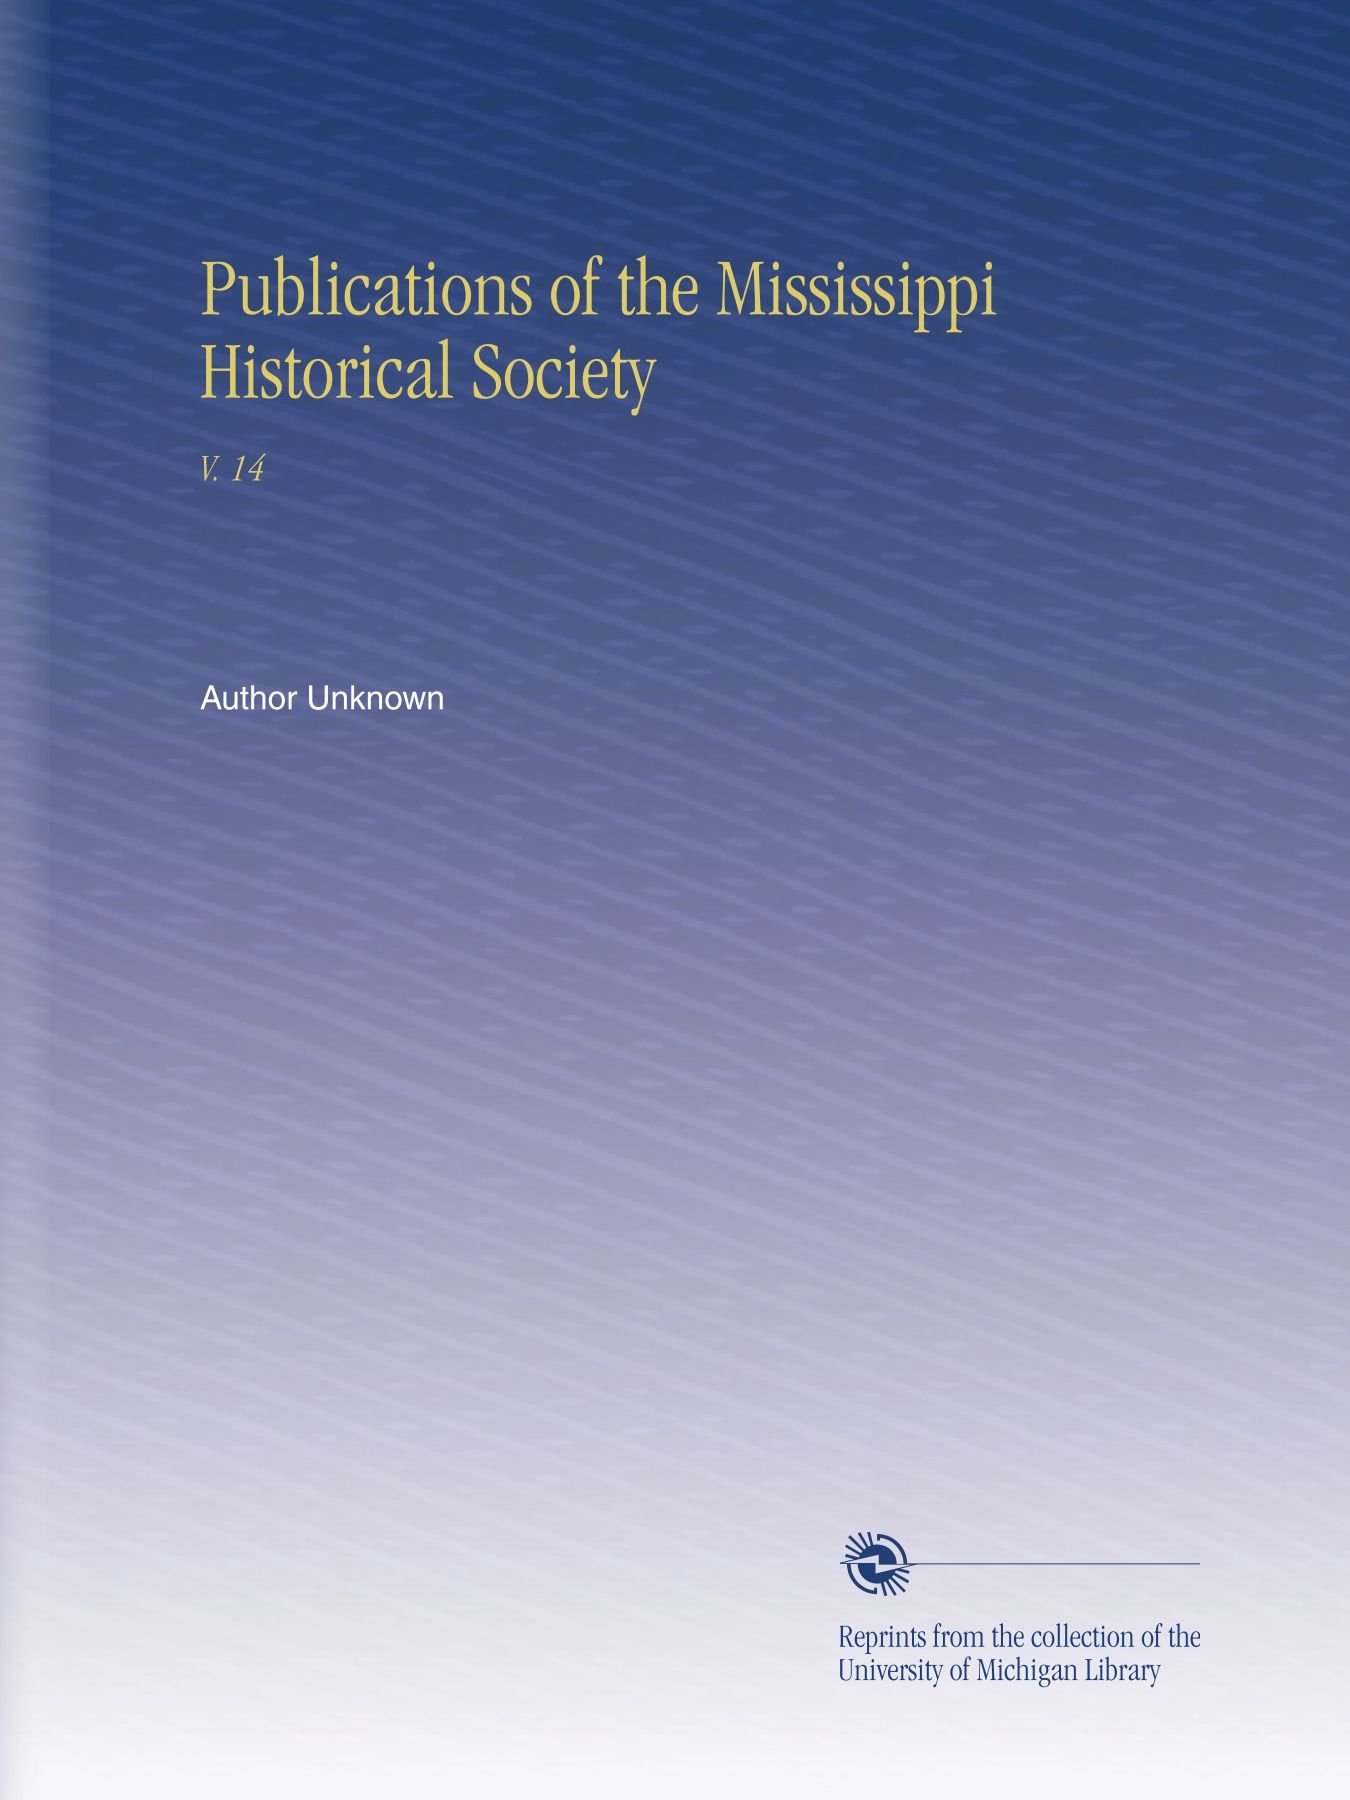 Download Publications of the Mississippi Historical Society: V. 14 pdf